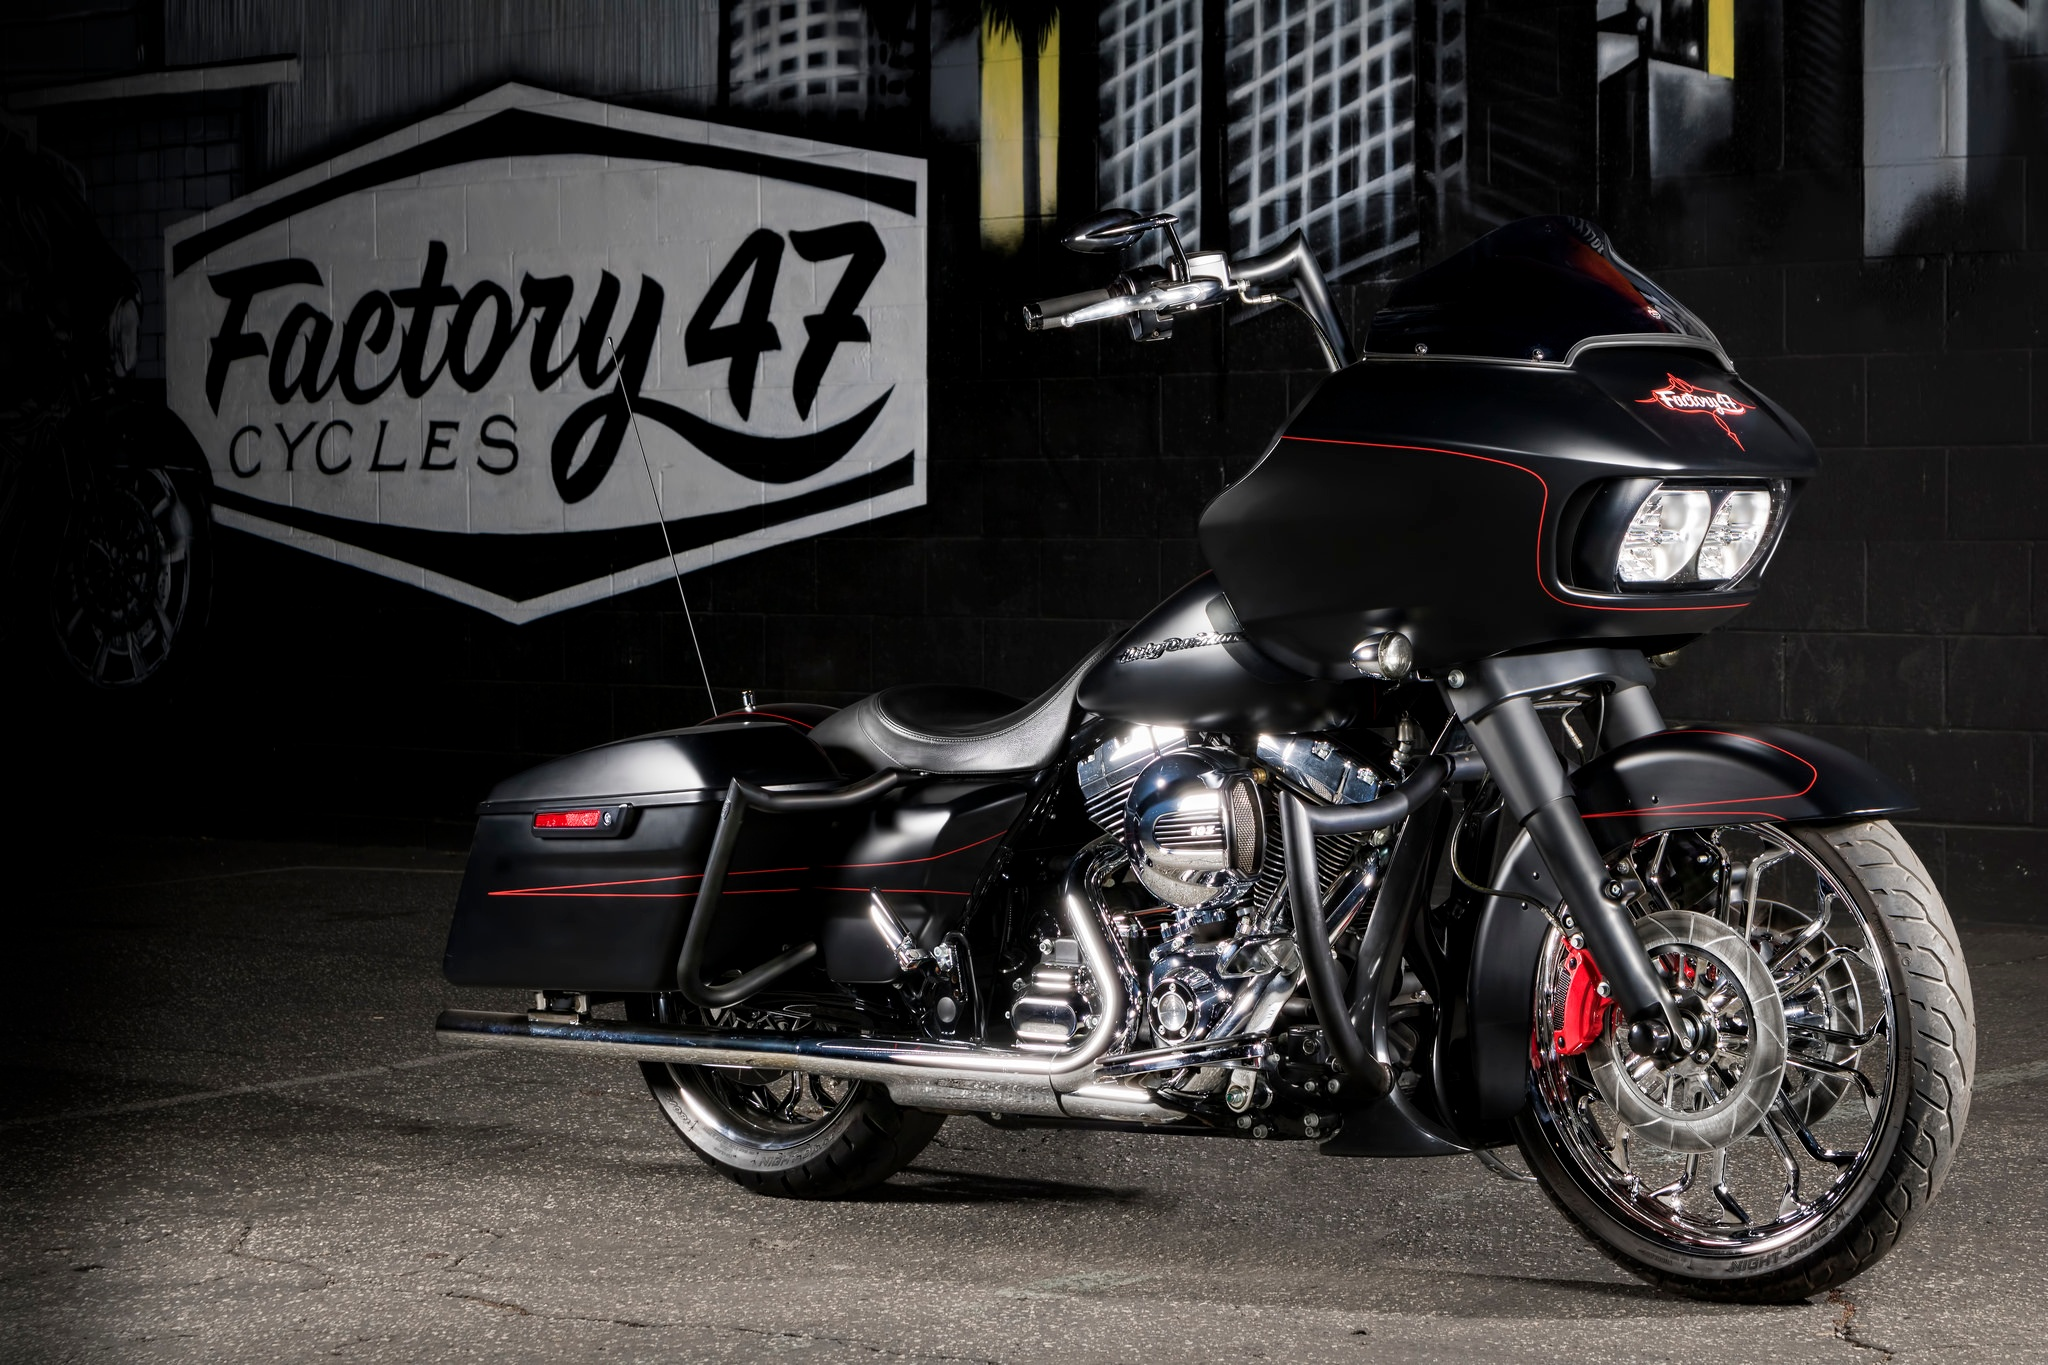 2014 Street Glide Special >> Factory 47 Handlebars